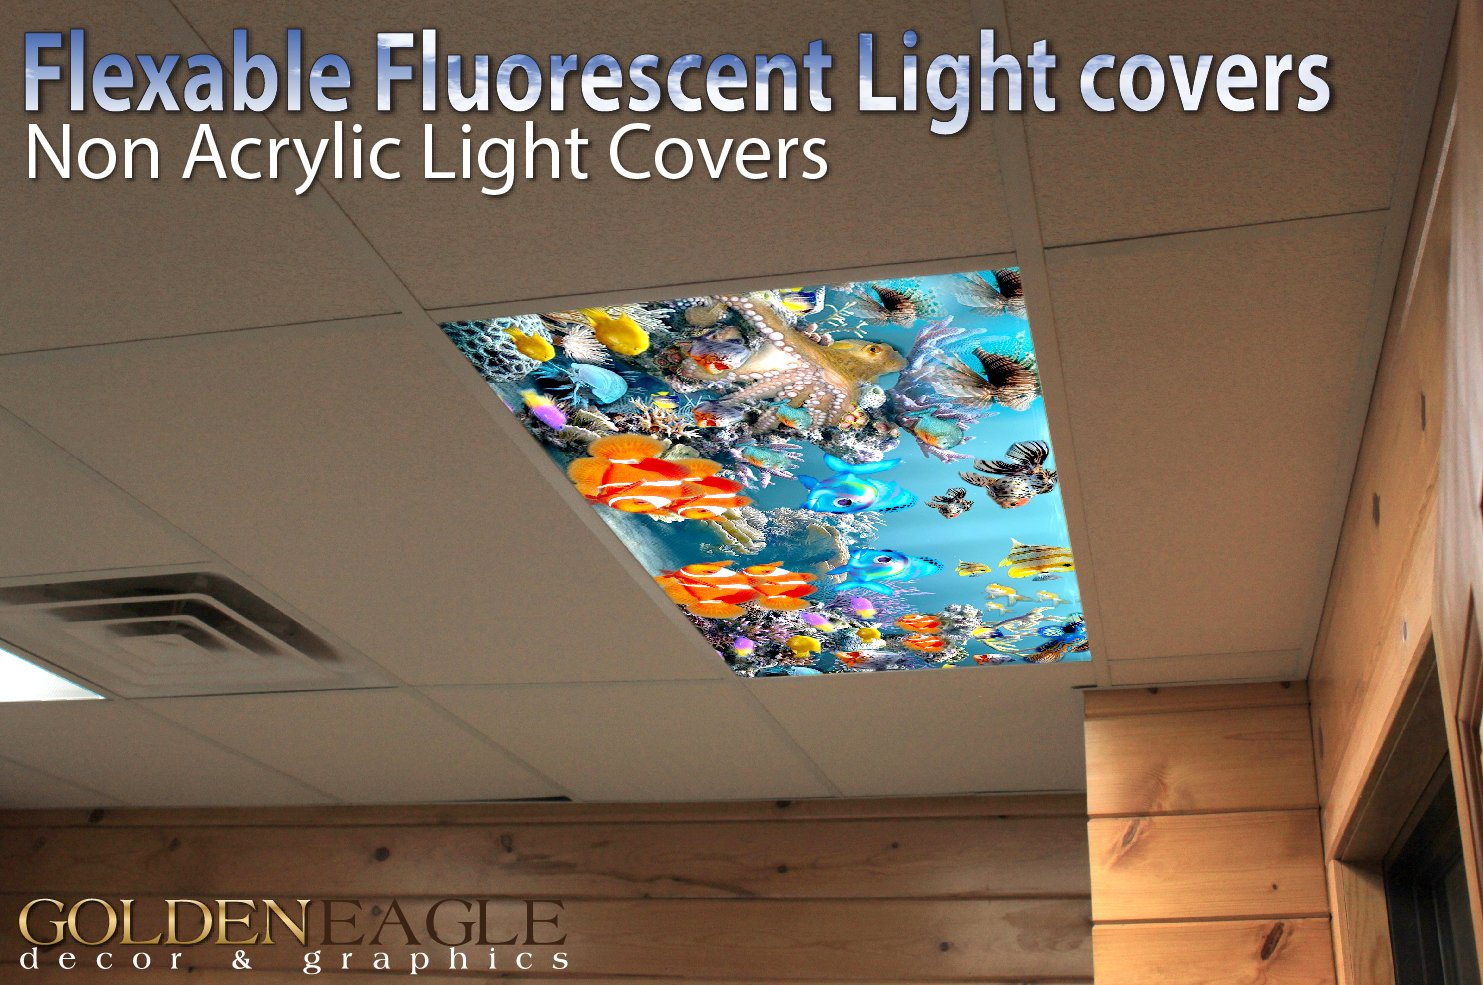 Kitchen Fluorescent Light Covers Kids Ocean Reef 3 2ft X 4ft Drop Ceiling Fluorescent Decorative